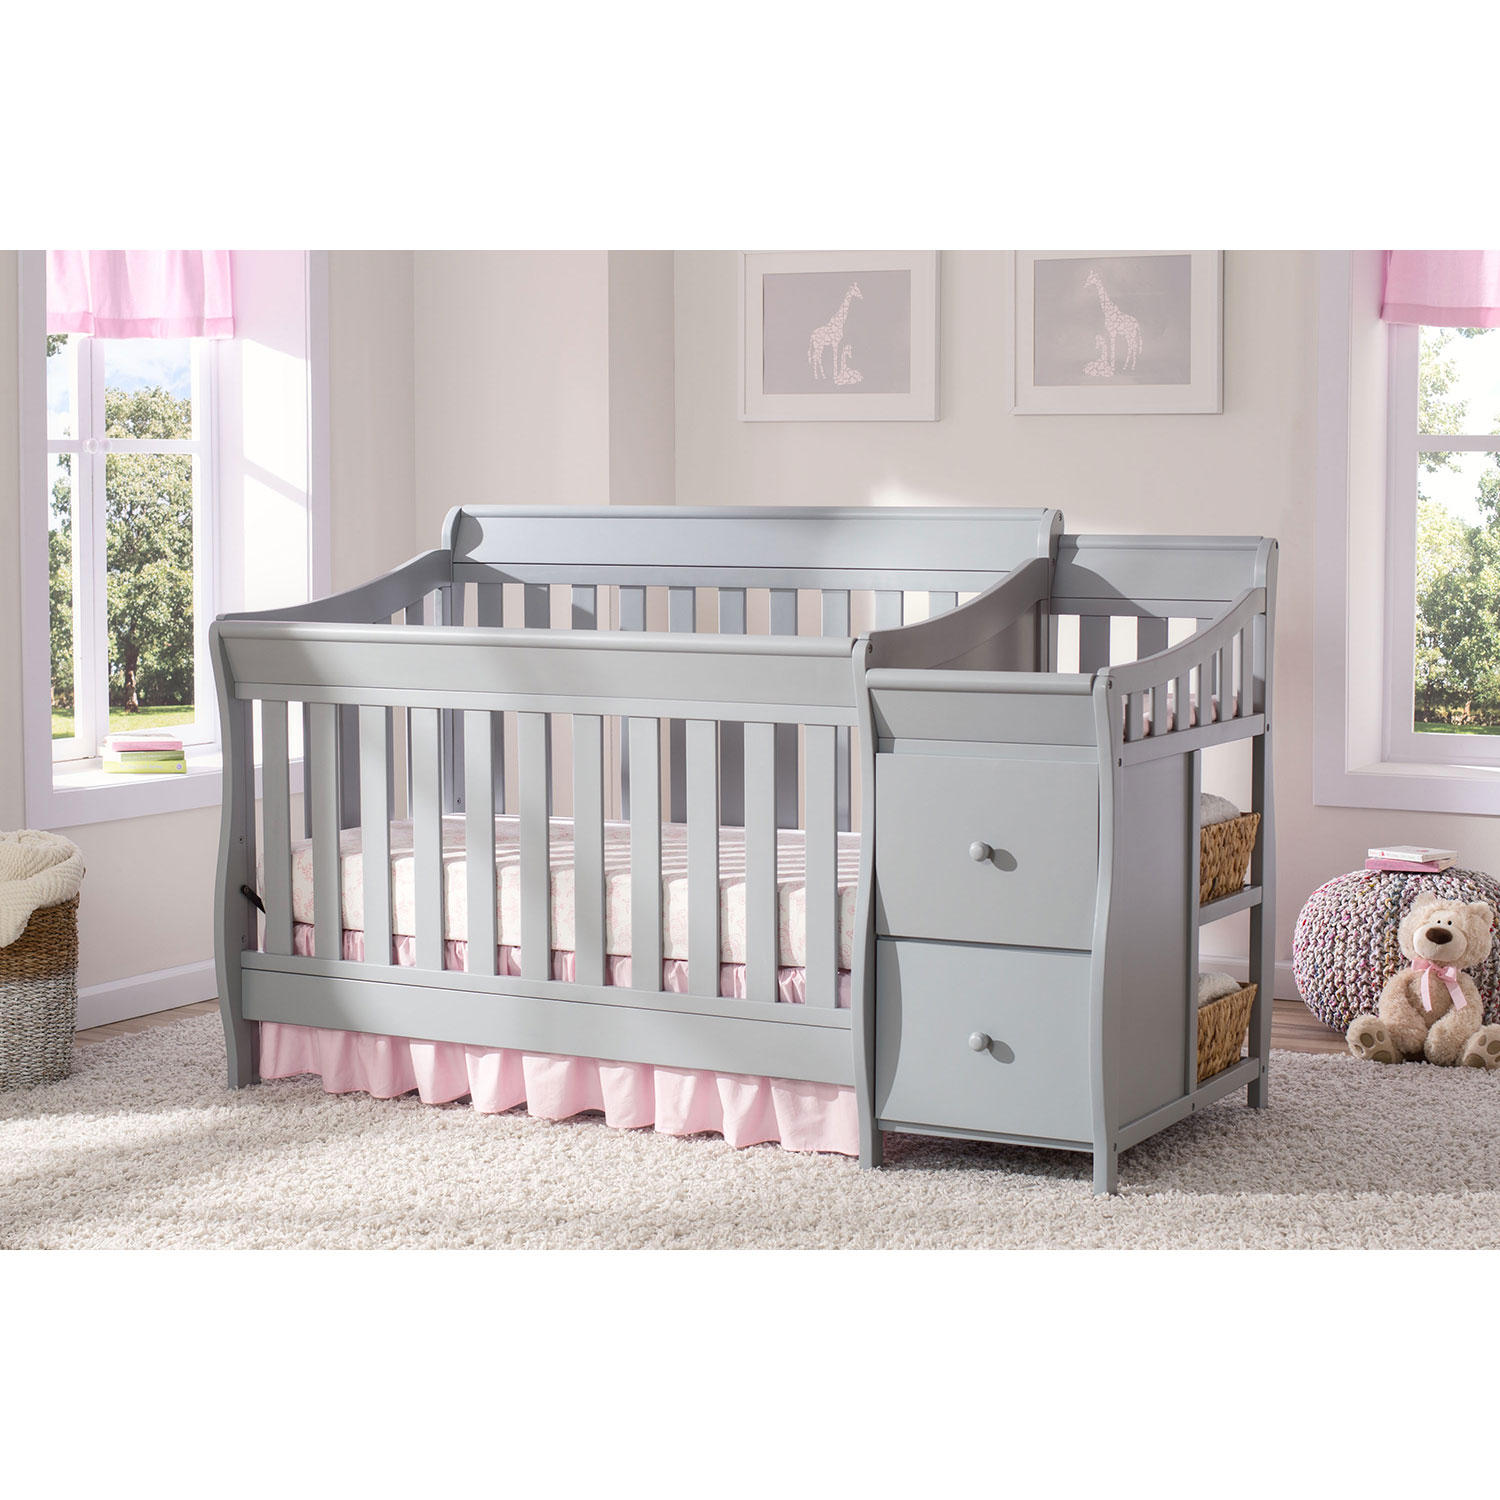 Delta Children Bentley Convertible Crib 'N' Changer,